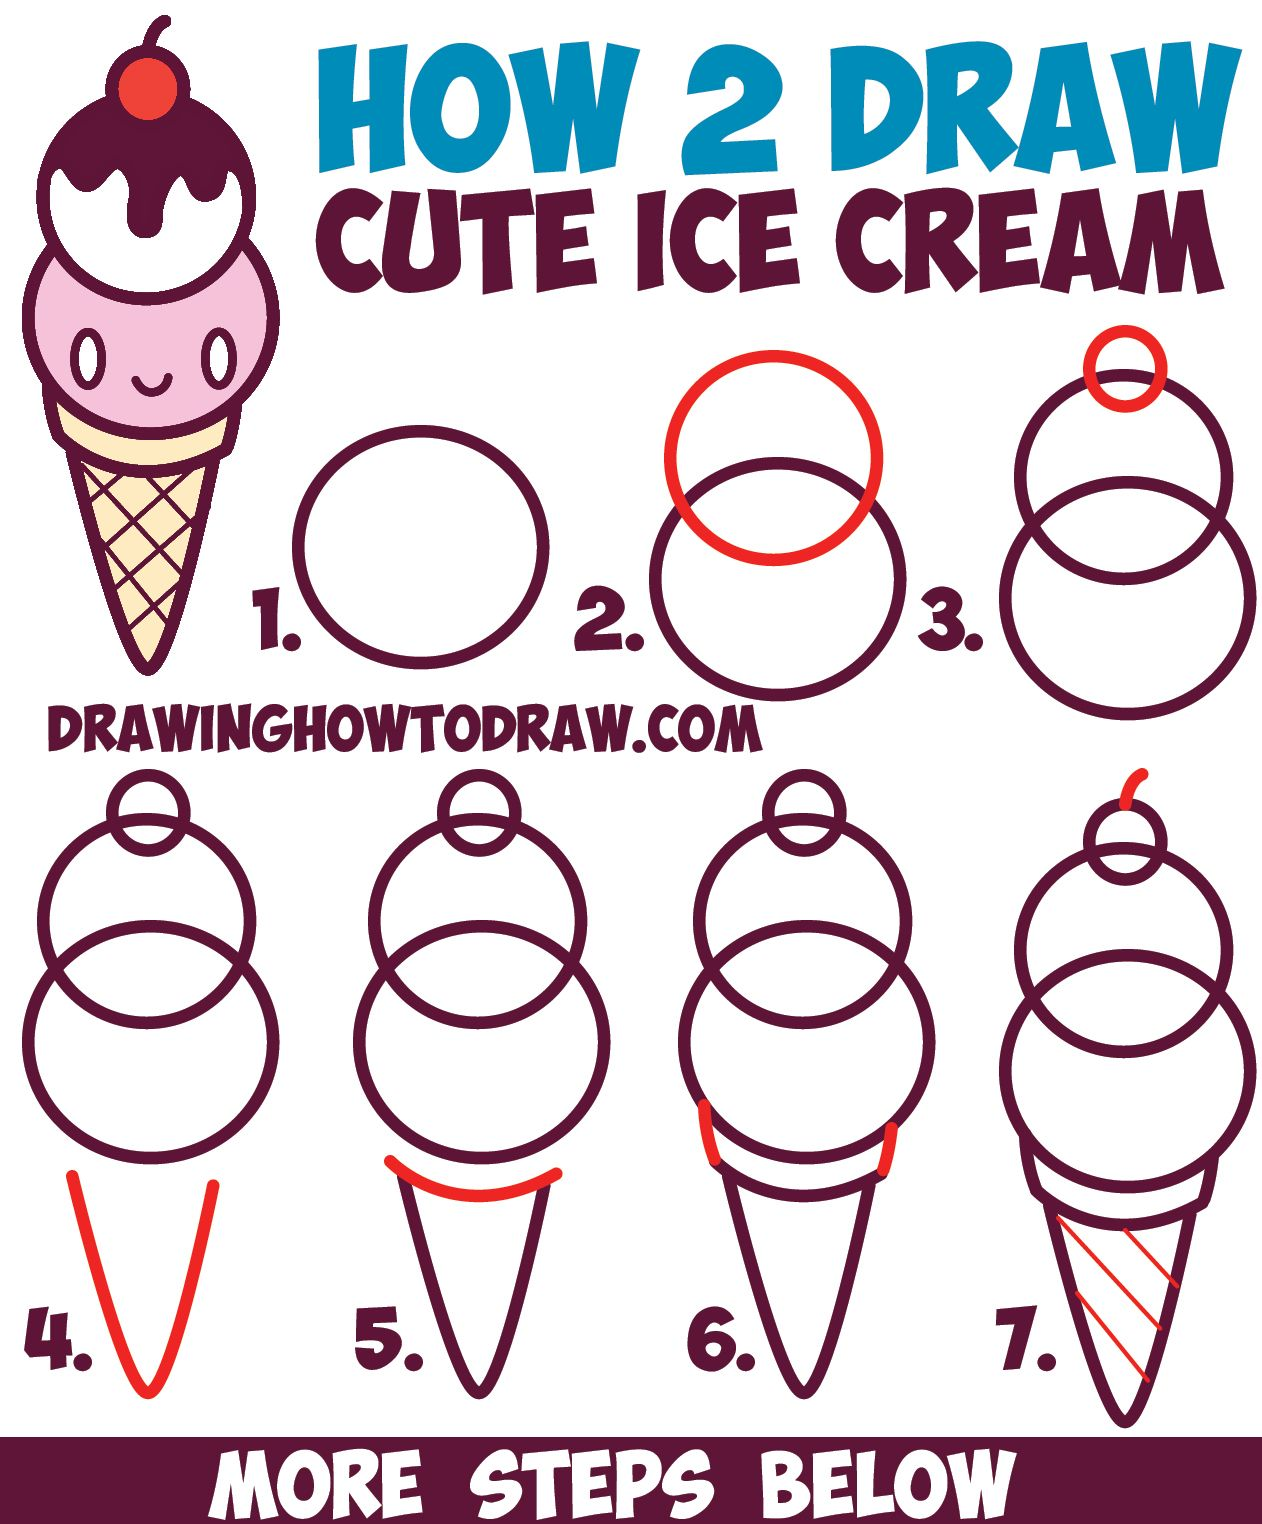 How To Draw Cute Kawaii Ice Cream Cone With Face On It Easy Step